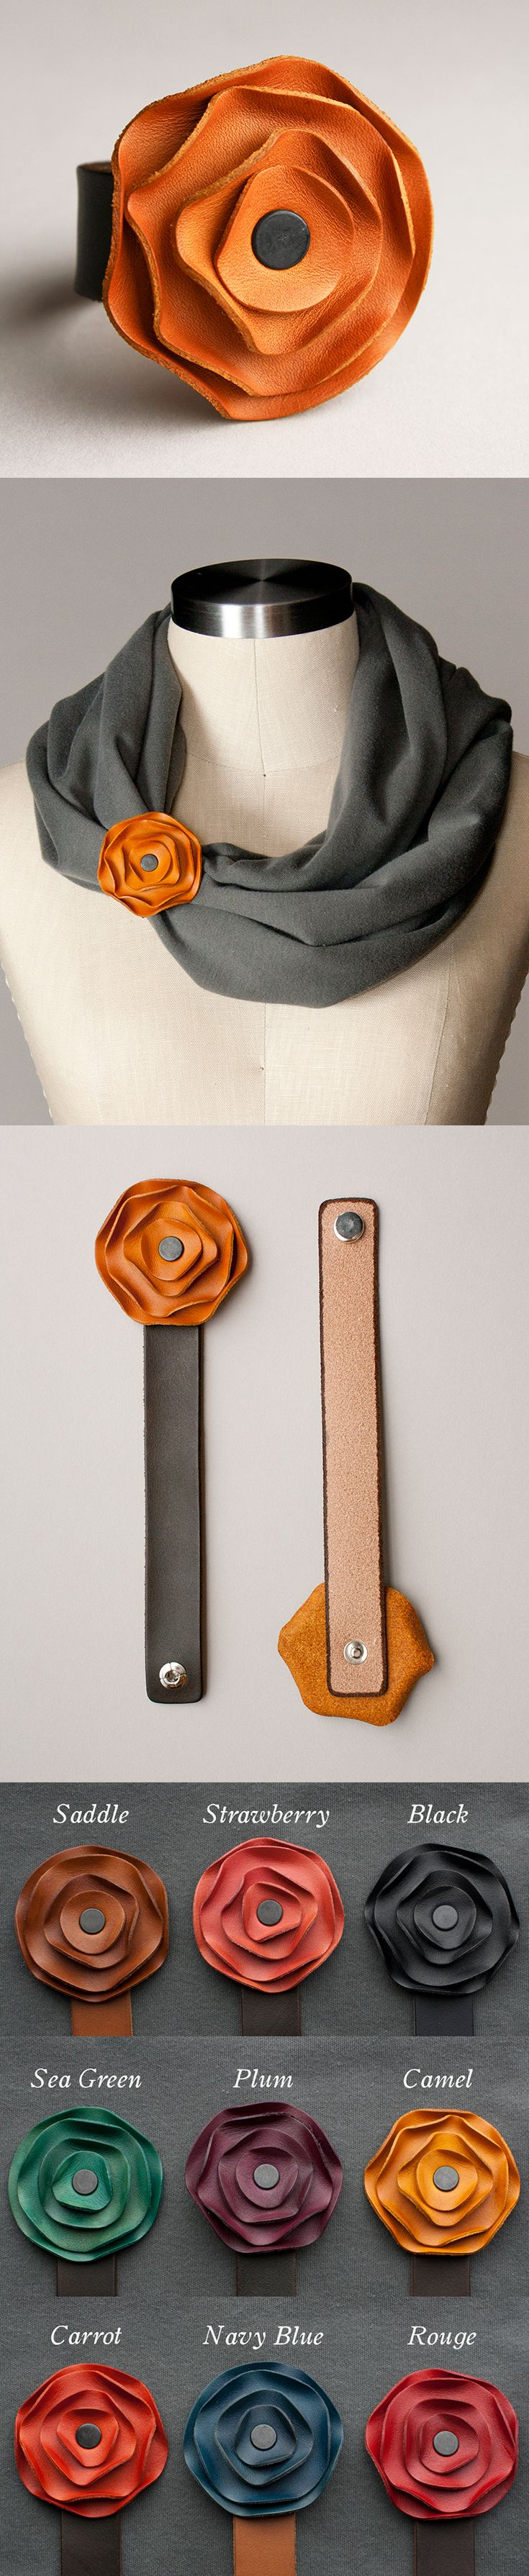 These Floral Leather Scarf Cuffs add just the right amount of attitude to a snuggly scarf. Each piece of leather is molded by hand, dyed, waxed and buffed, and finally riveted so that it comes together with a snap. Cuff fits on nearly any chunky scarf and comes in a ton of colors!